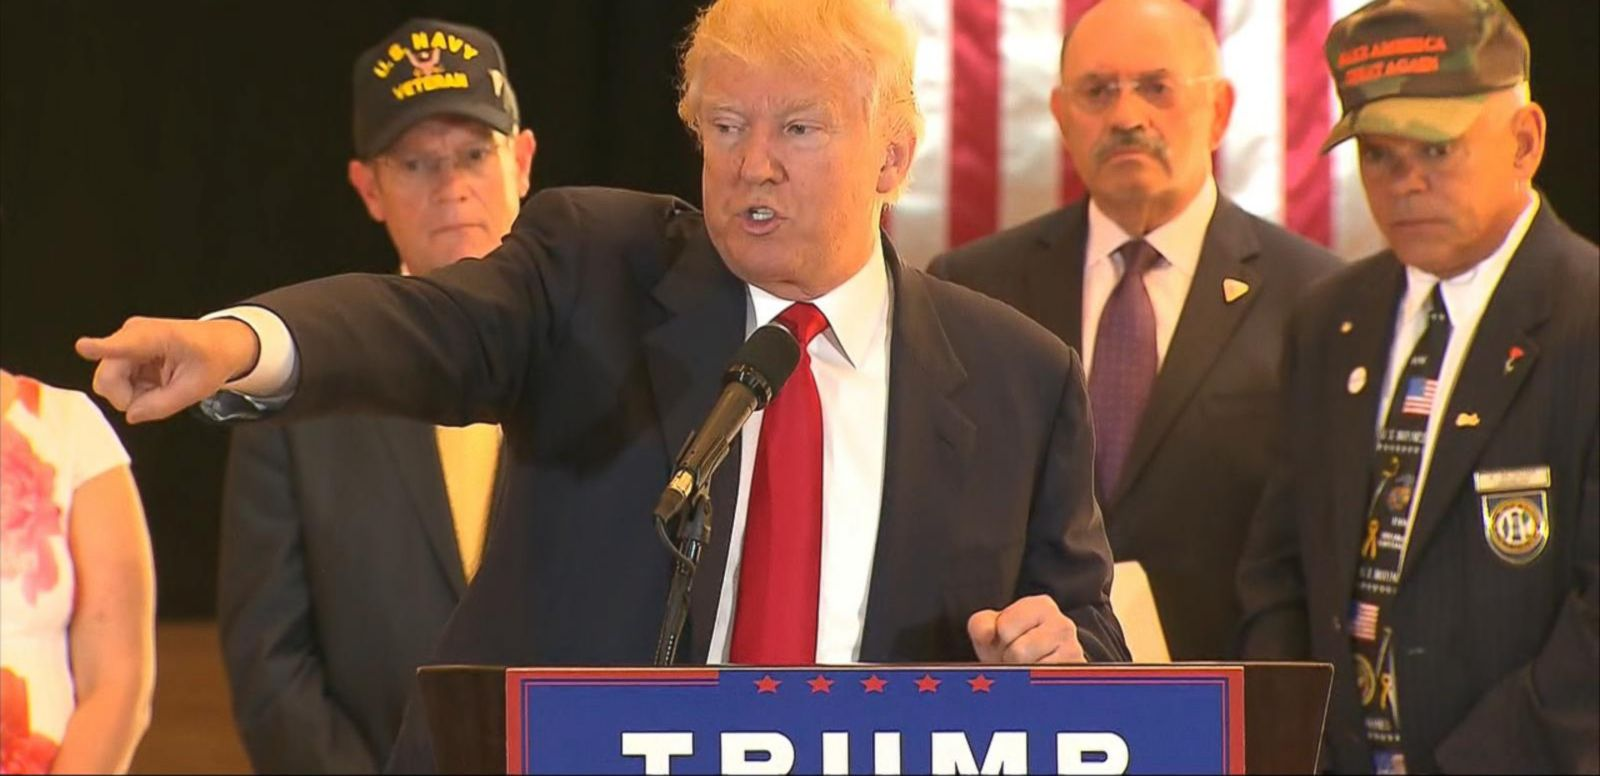 VIDEO: Donald Trump Goes on the Attack at News Conference